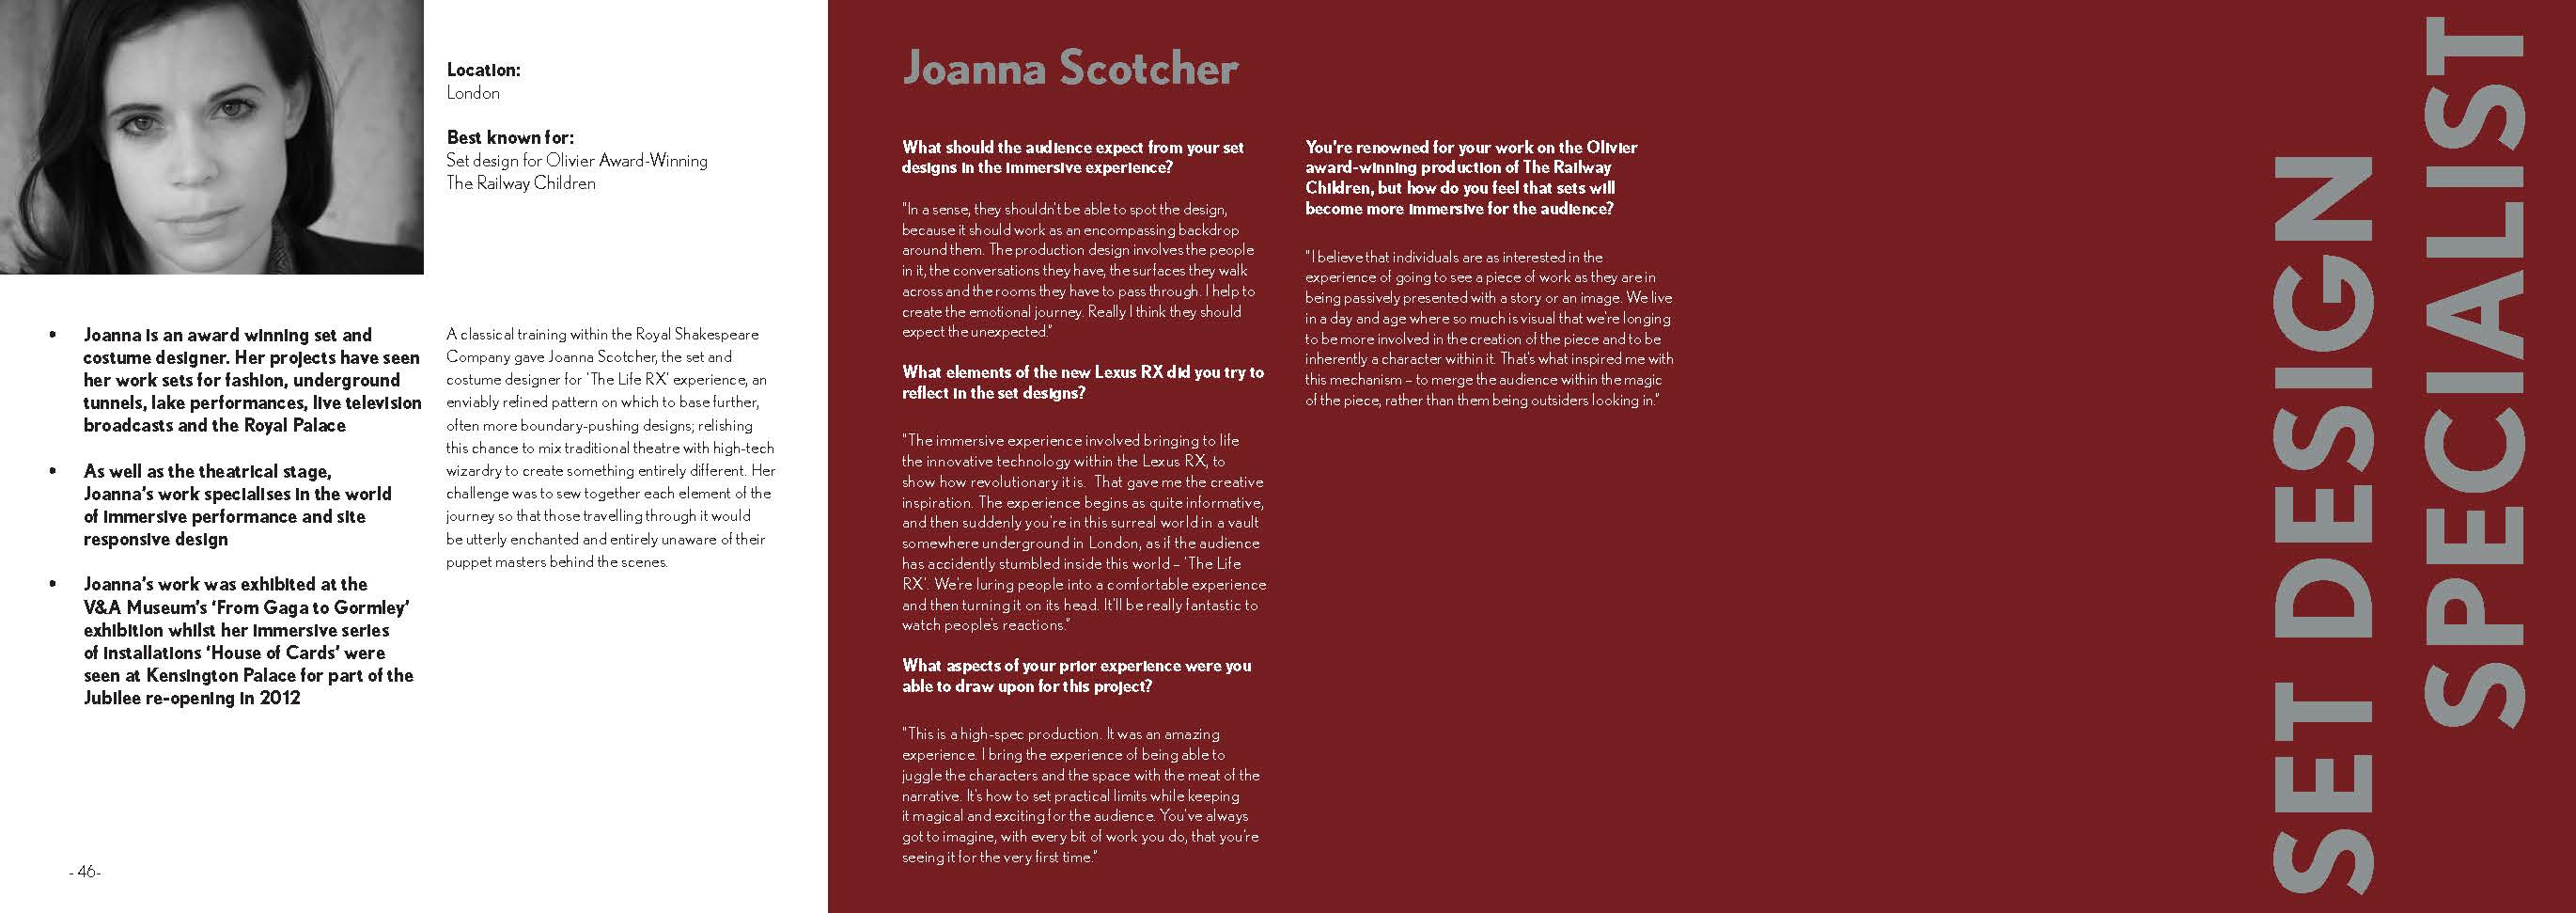 08 Joanna Scotcher